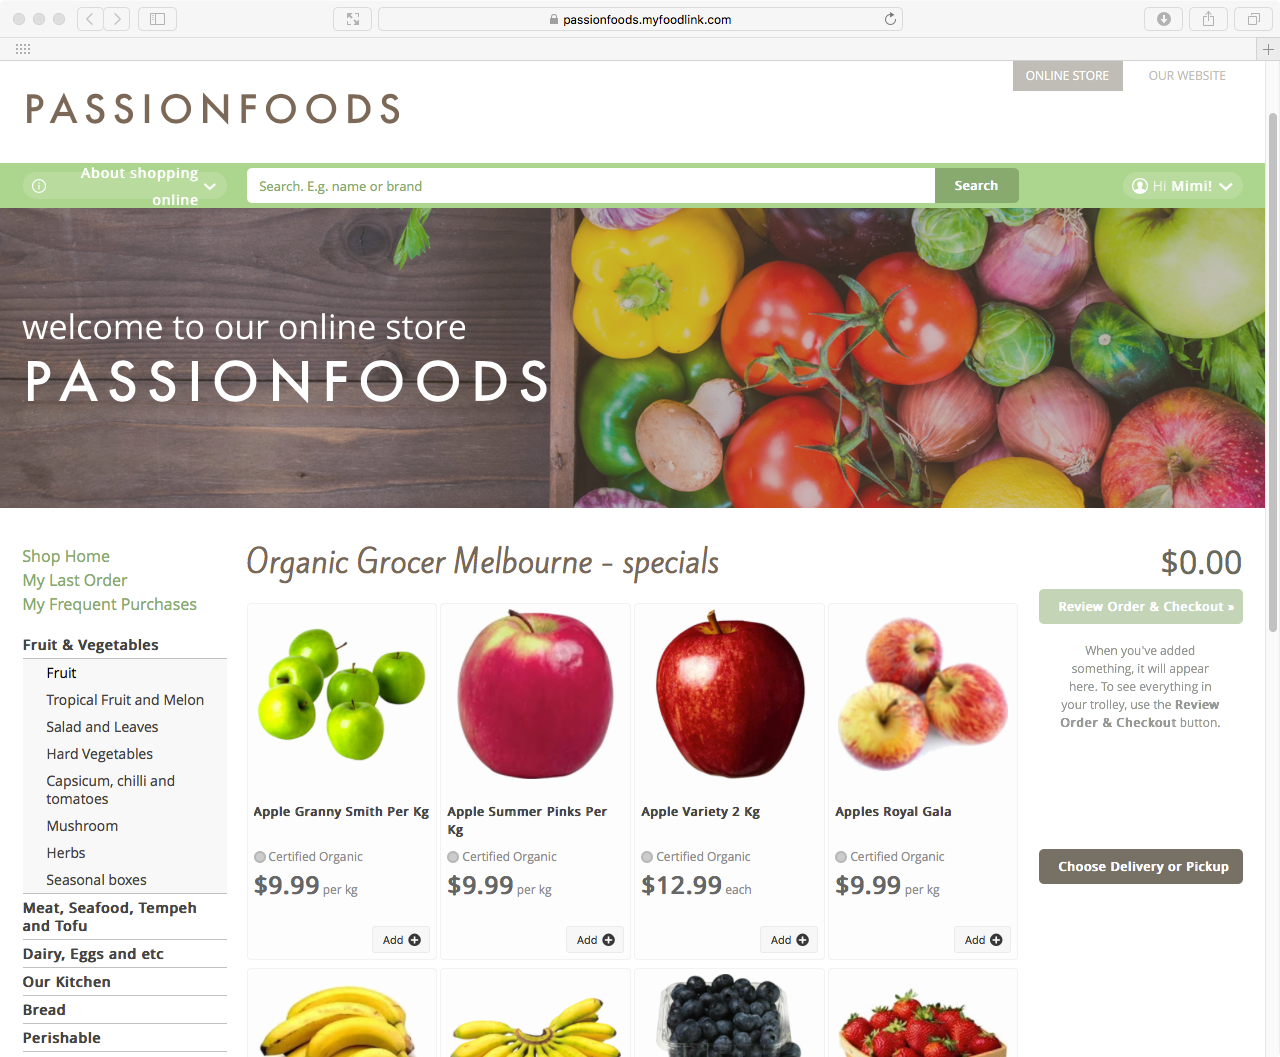 Image of Passion Foods online store home page